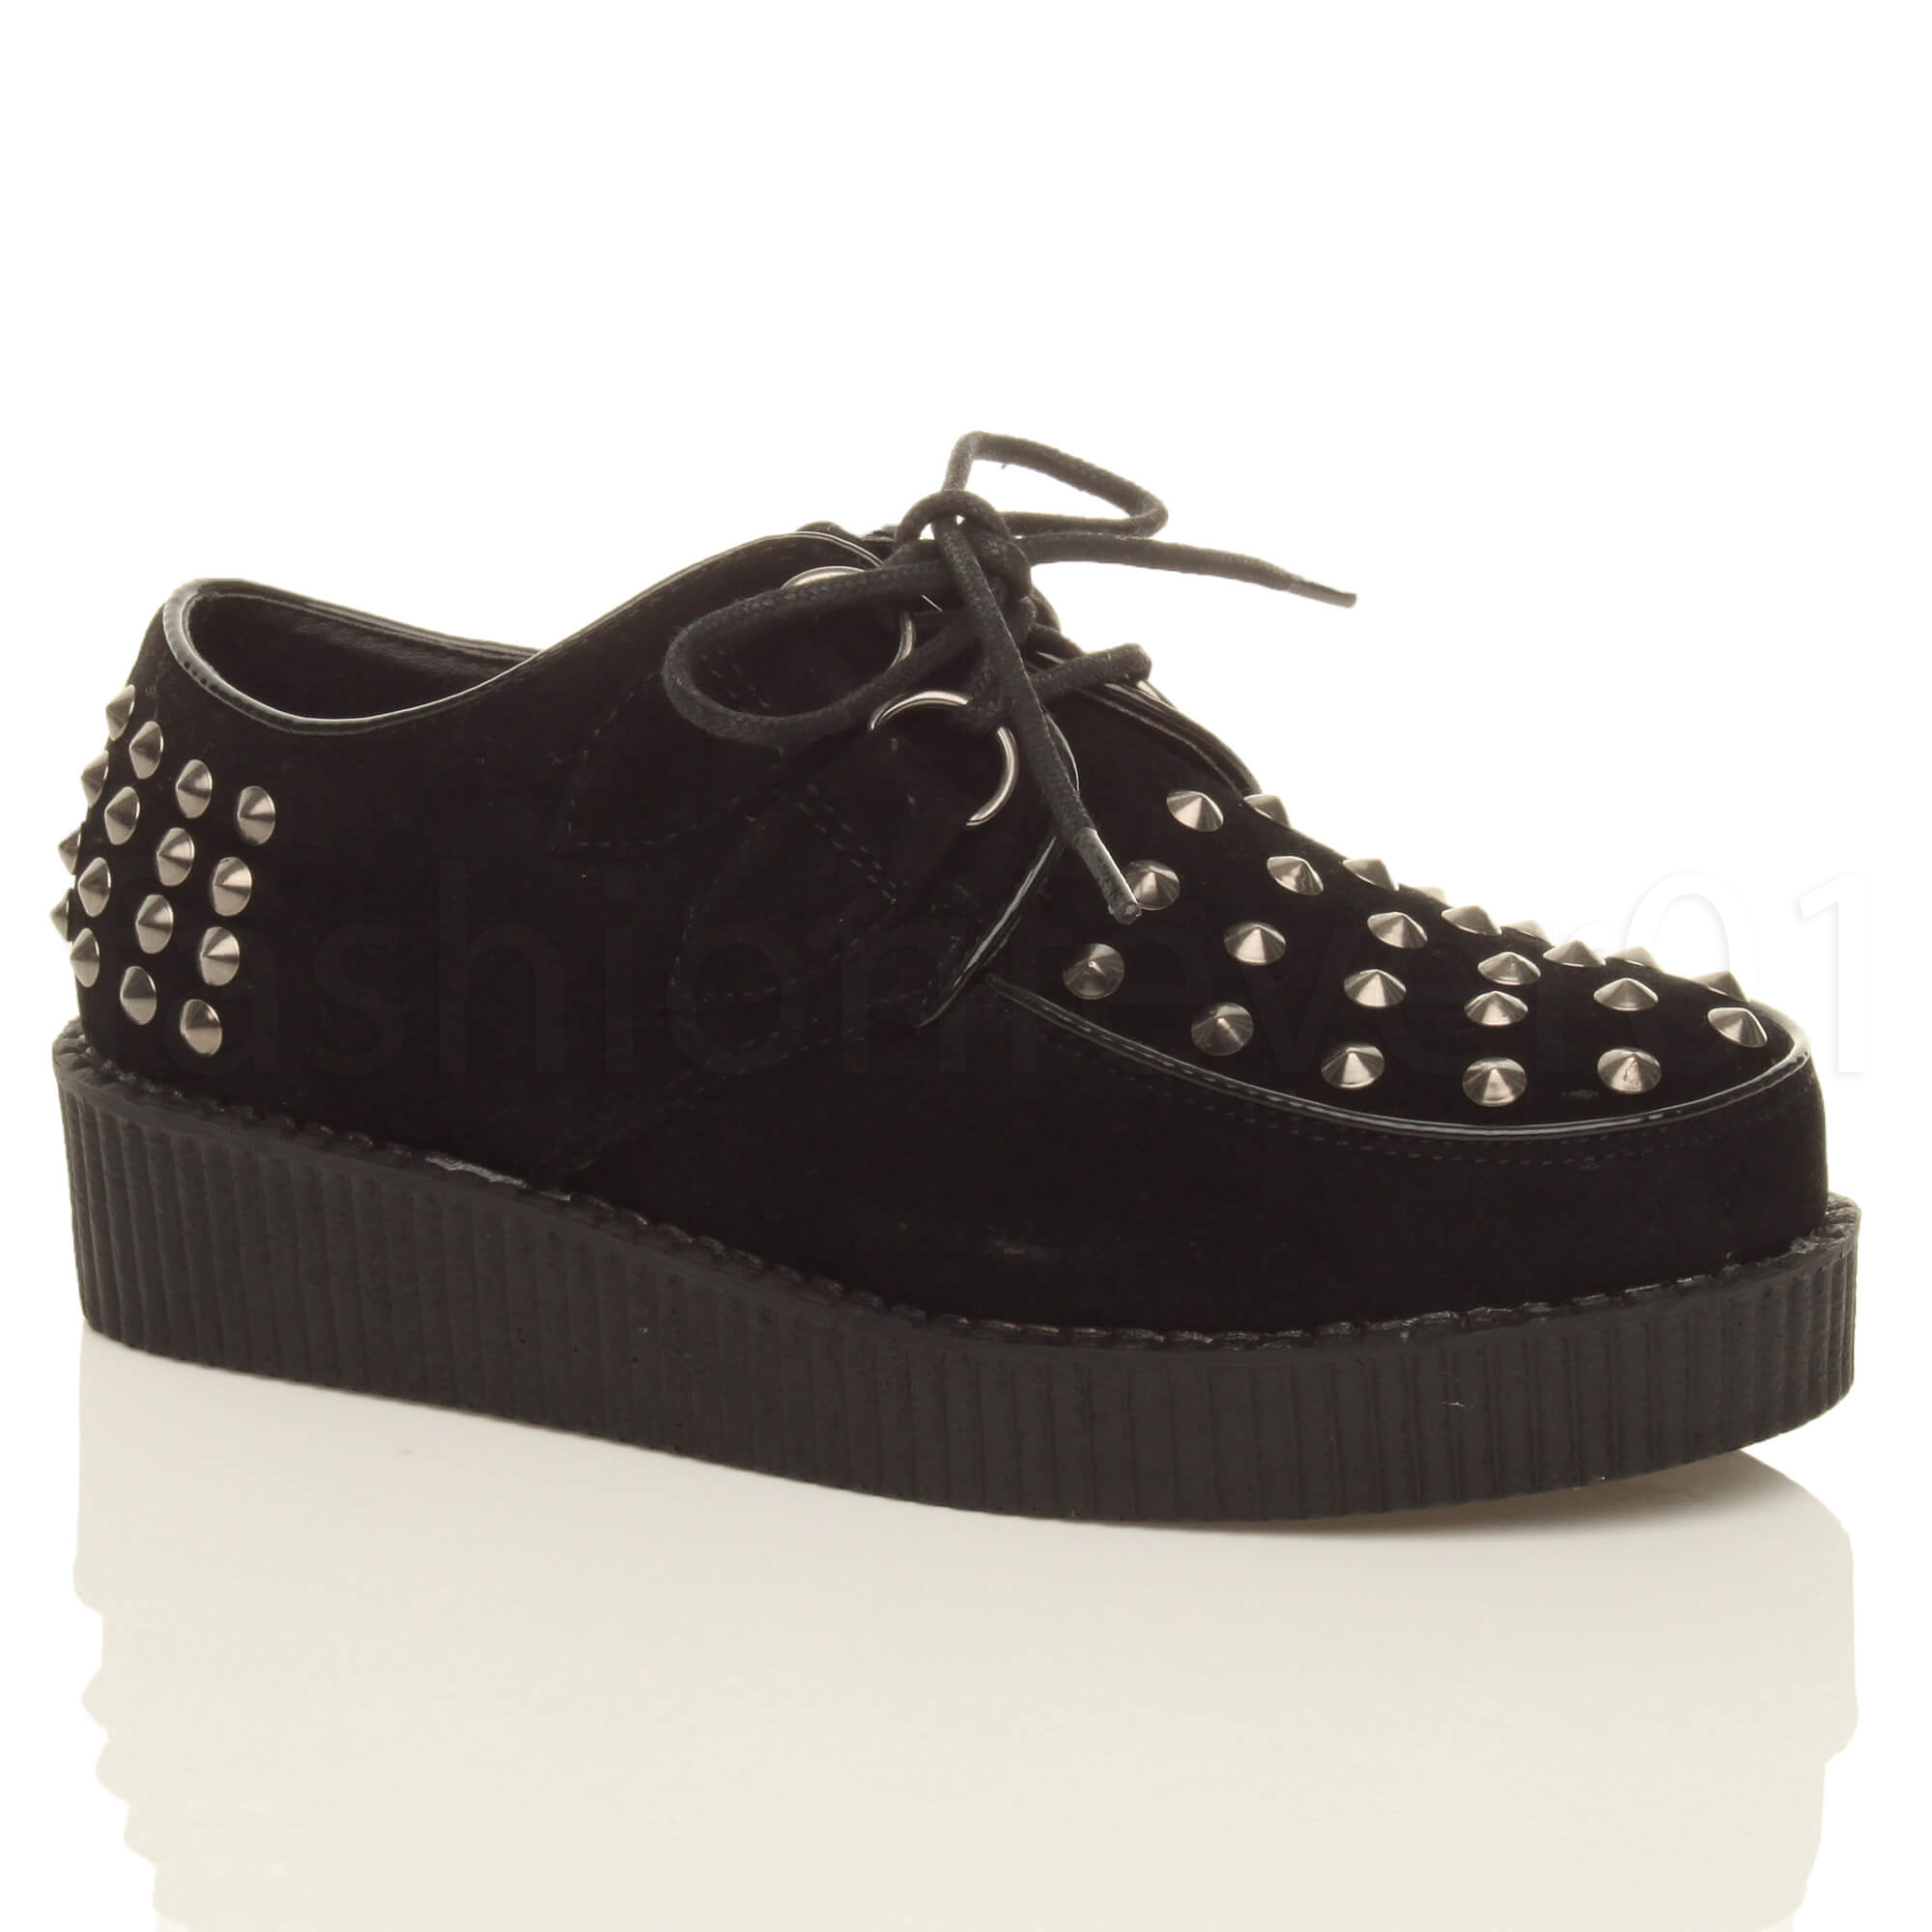 WOMENS-LADIES-FLAT-PLATFORM-FLATFORM-WEDGE-LACE-UP-PUNK-CREEPERS-SHOES-BOOT-SIZE